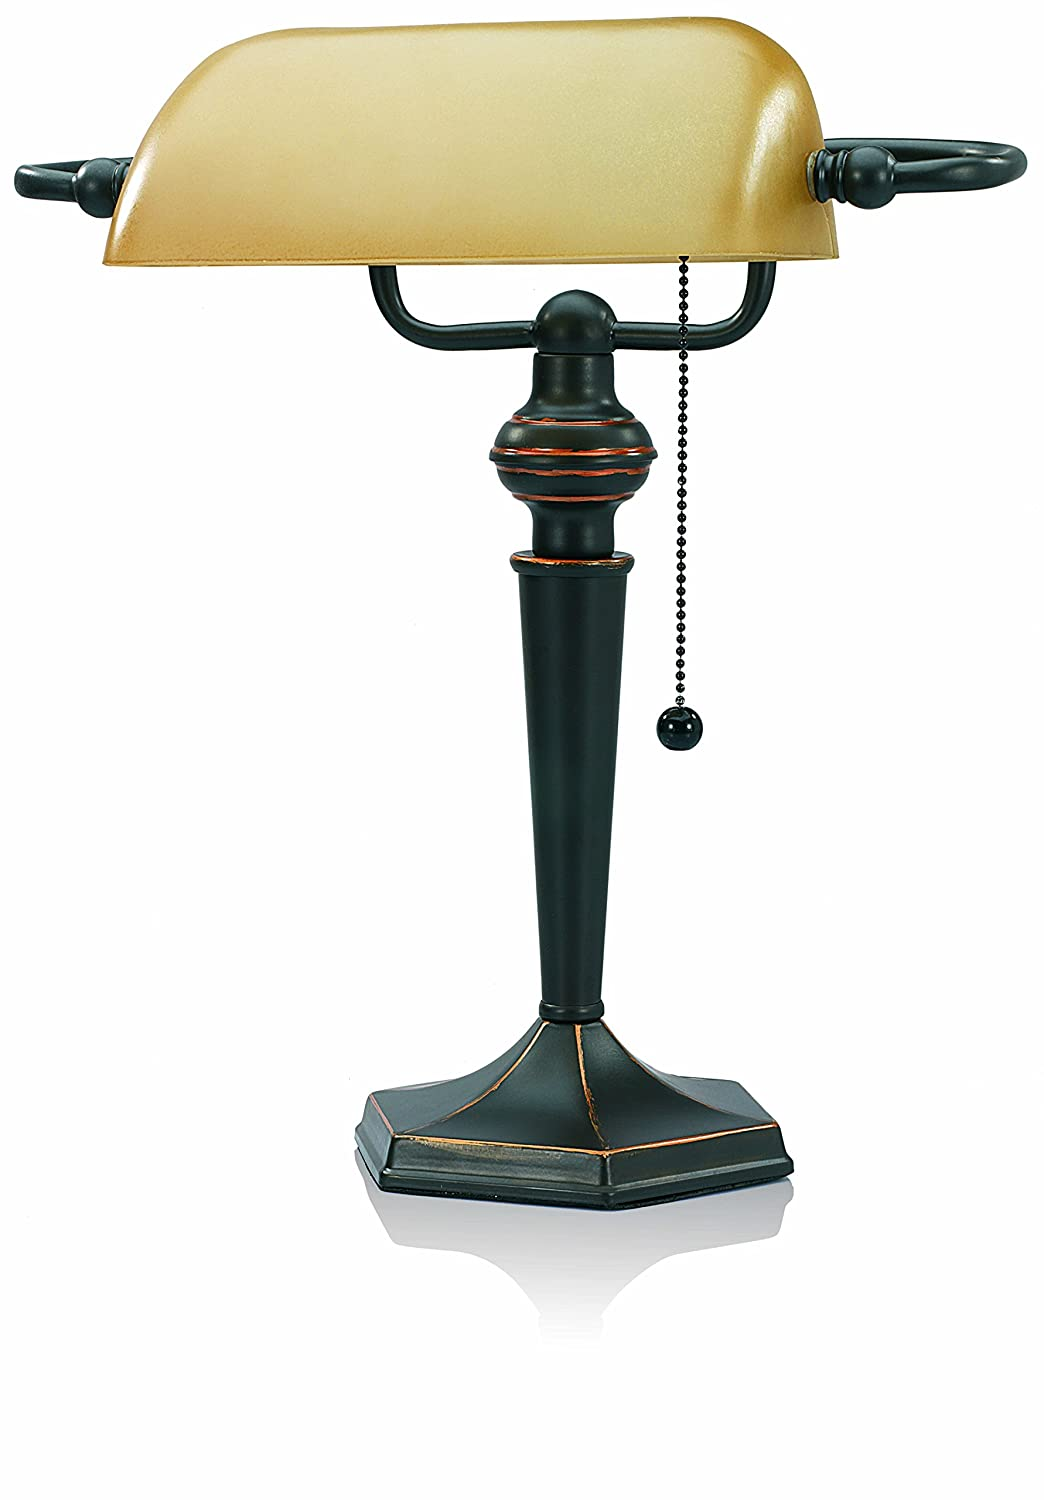 Amazon.com : V-LIGHT Traditional Style CFL Banker's Desk Lamp with Amber  Glass Shade (CAVS91045BRZ) : Office Products - Amazon.com : V-LIGHT Traditional Style CFL Banker's Desk Lamp With